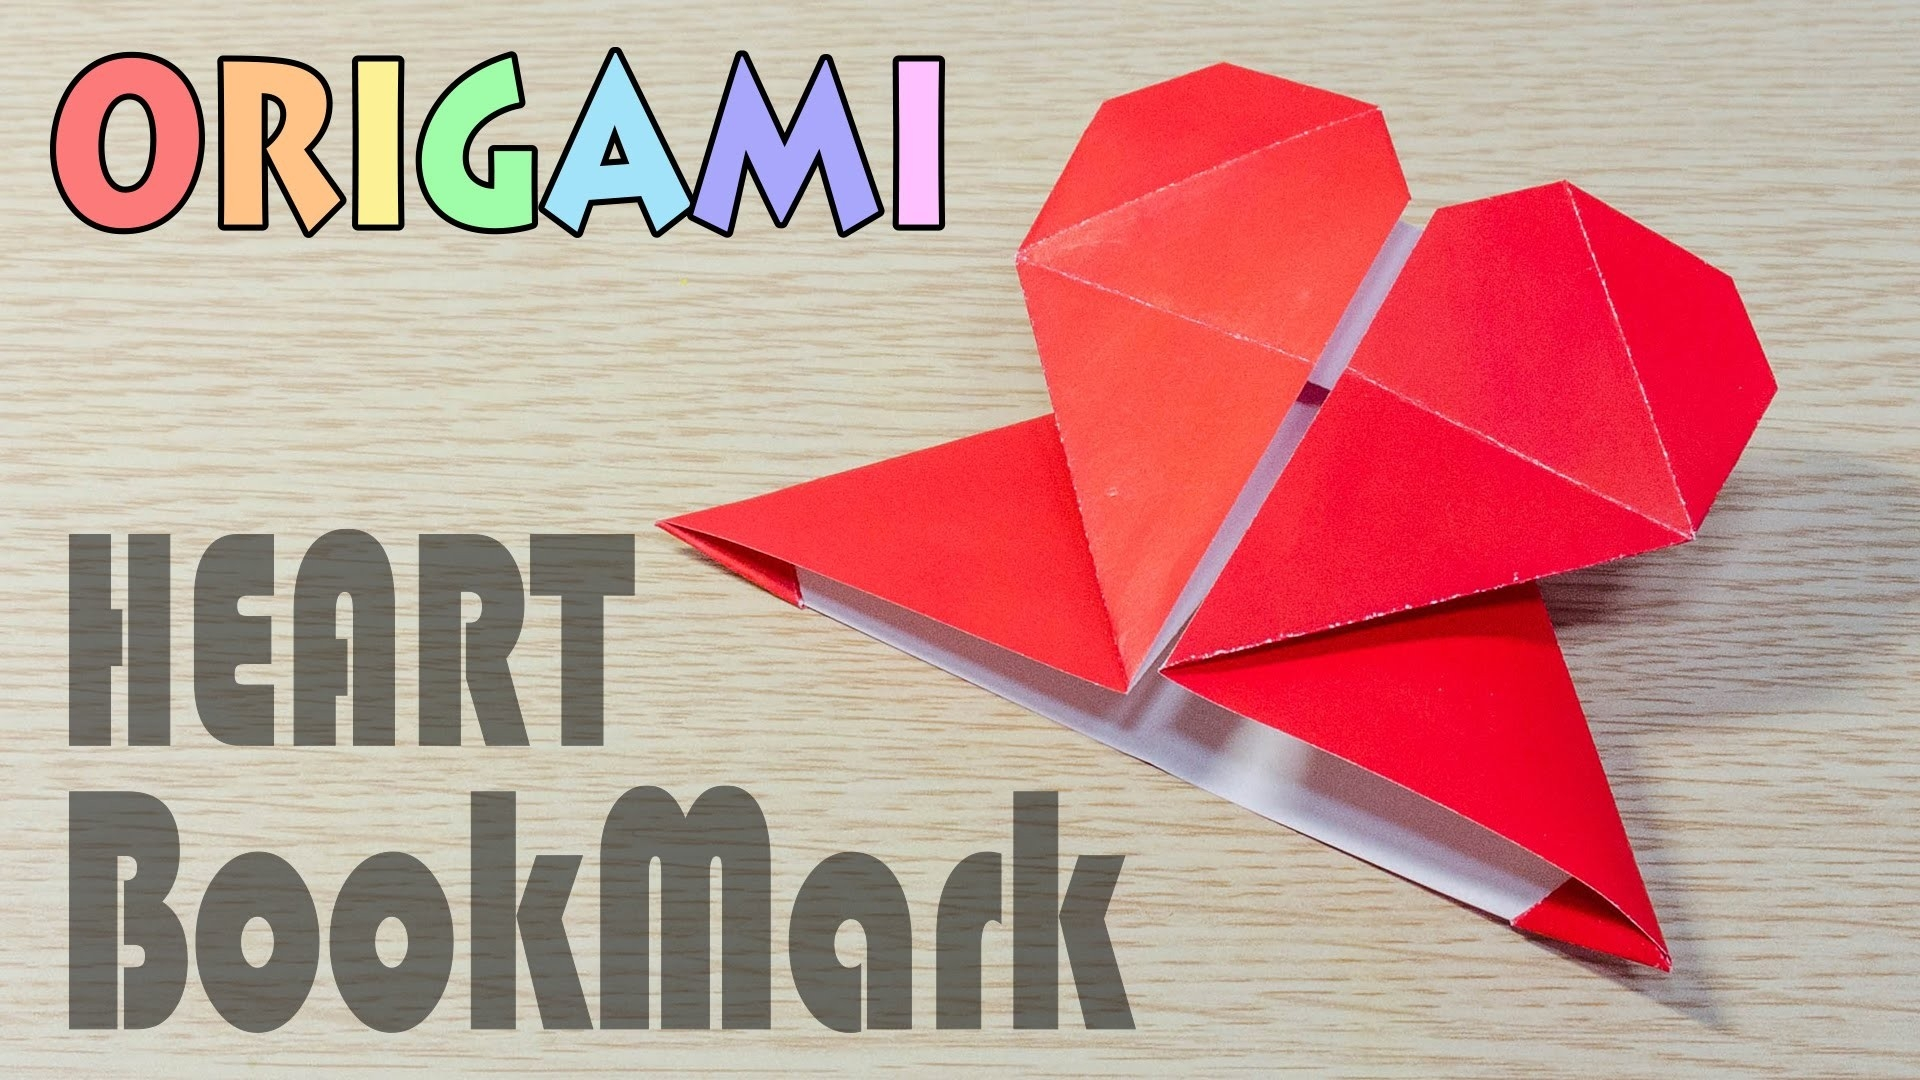 Origami Heart Bookmark Make Pape Corner Folding Tutorial - Dma within How To Make Heart Bookmarks Step By Step 27868